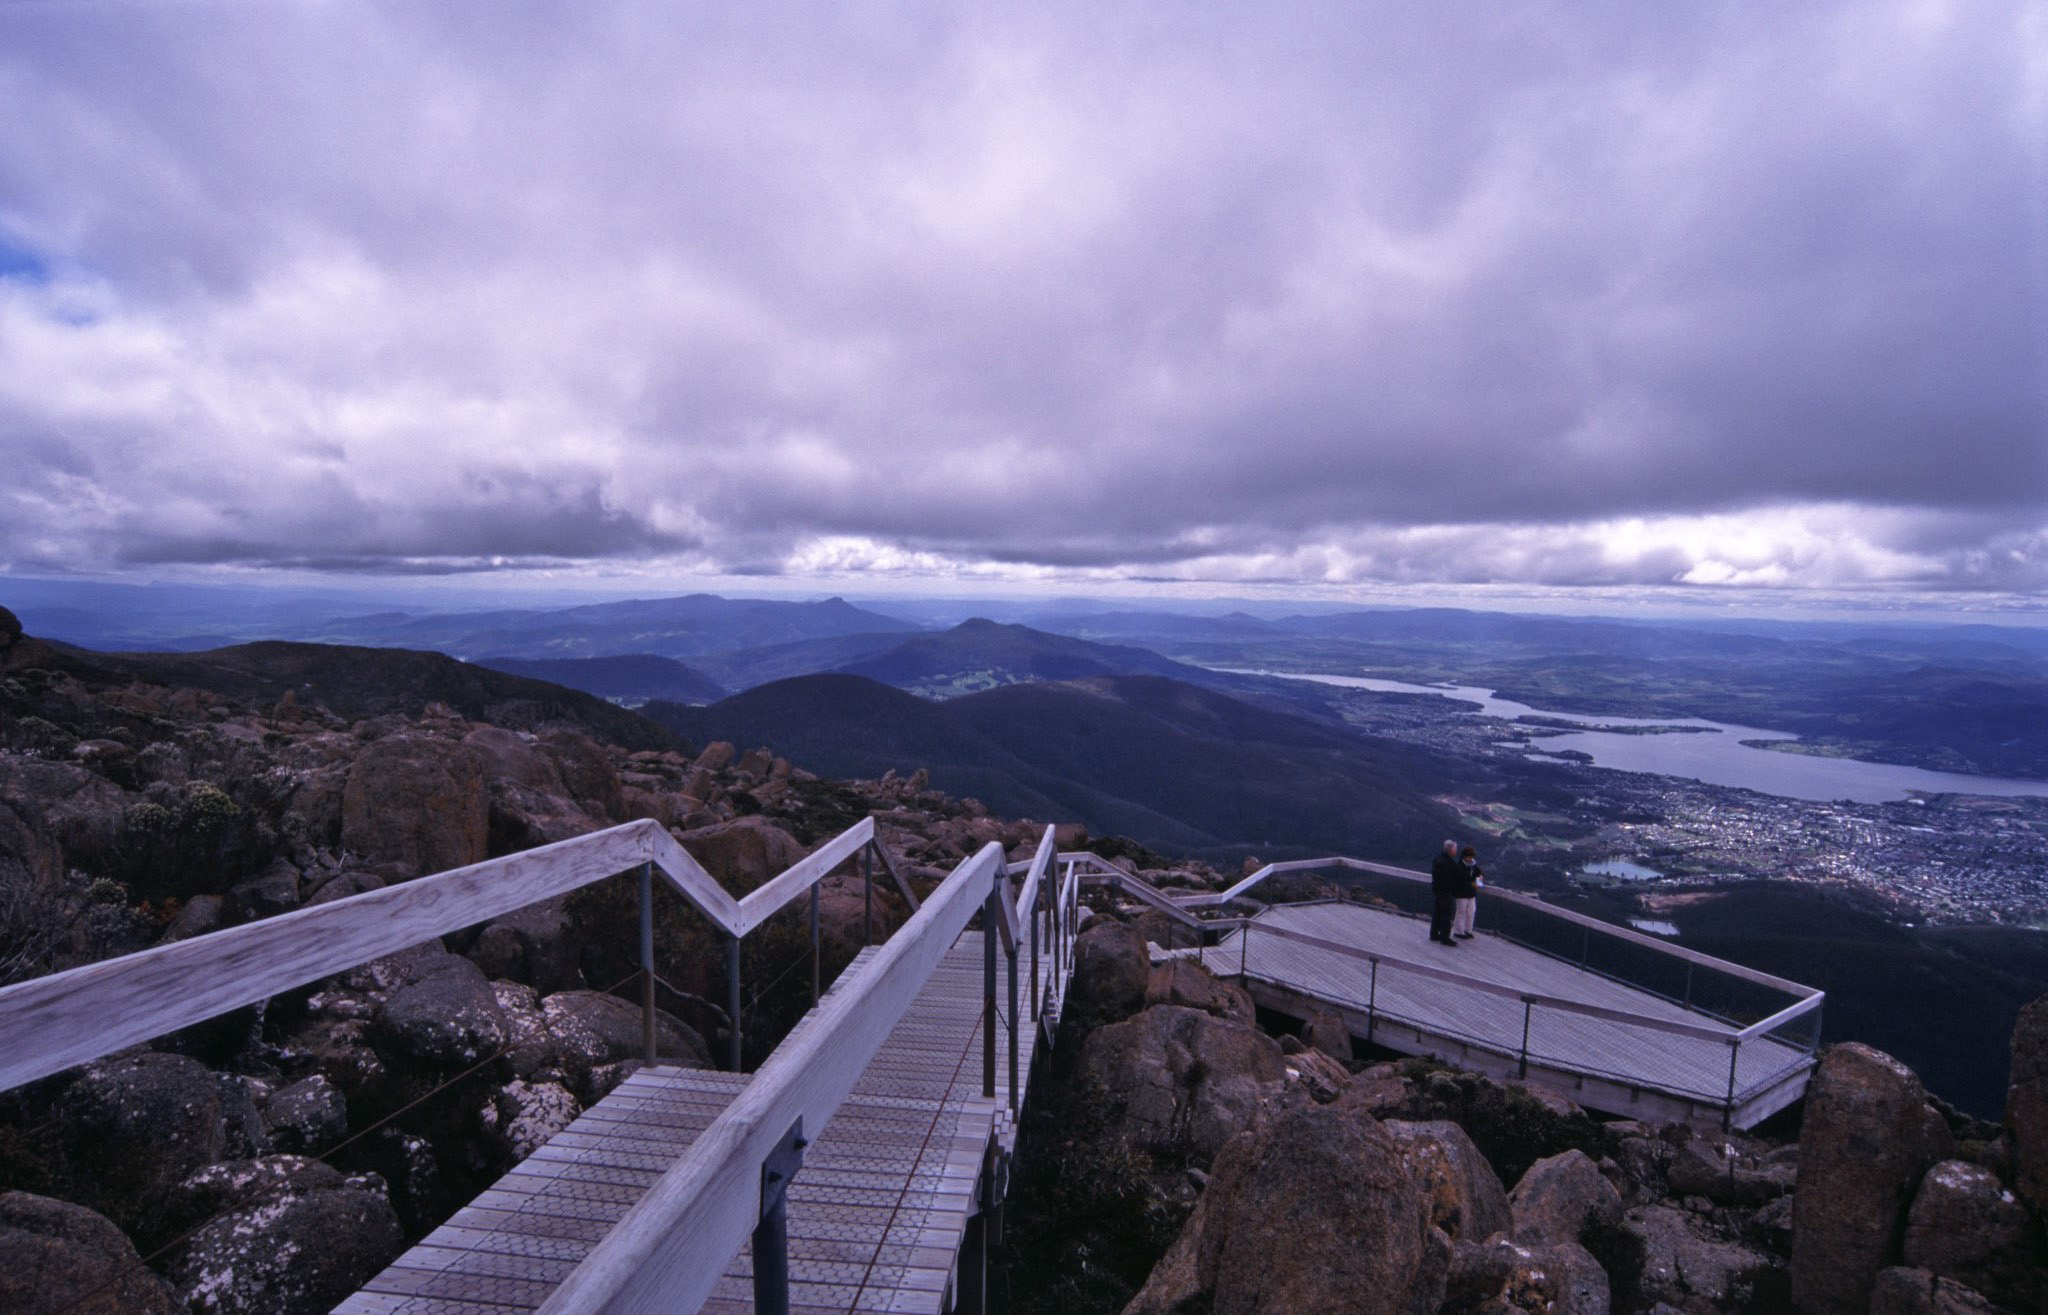 Lookout platform on Mount Wellington, Tasmania overlooking the Derwent River estuary and city of Hobart on a grey overcast day with a tourist at the viewing telescope